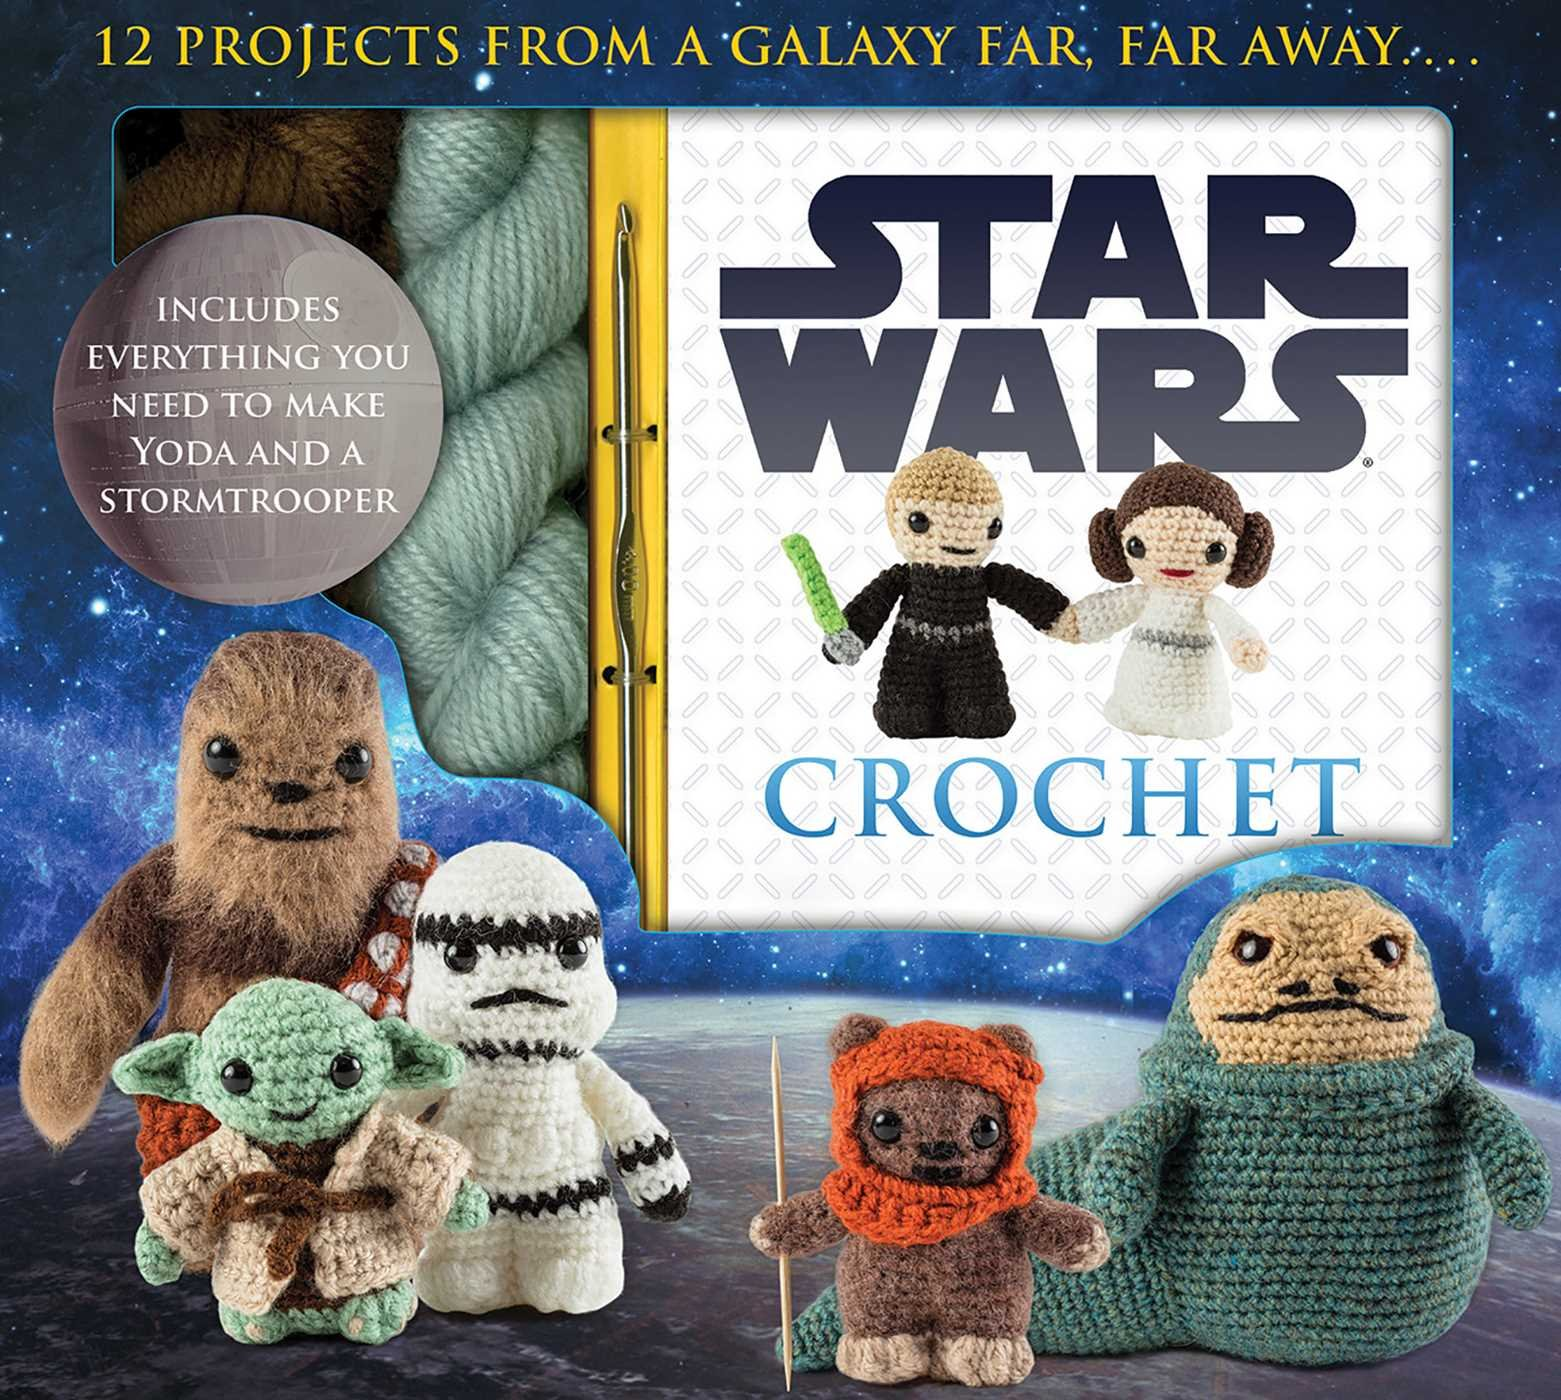 Star Wars Crochet (Crochet Kits): Lucy Collin: 9781626863262: Amazon ...